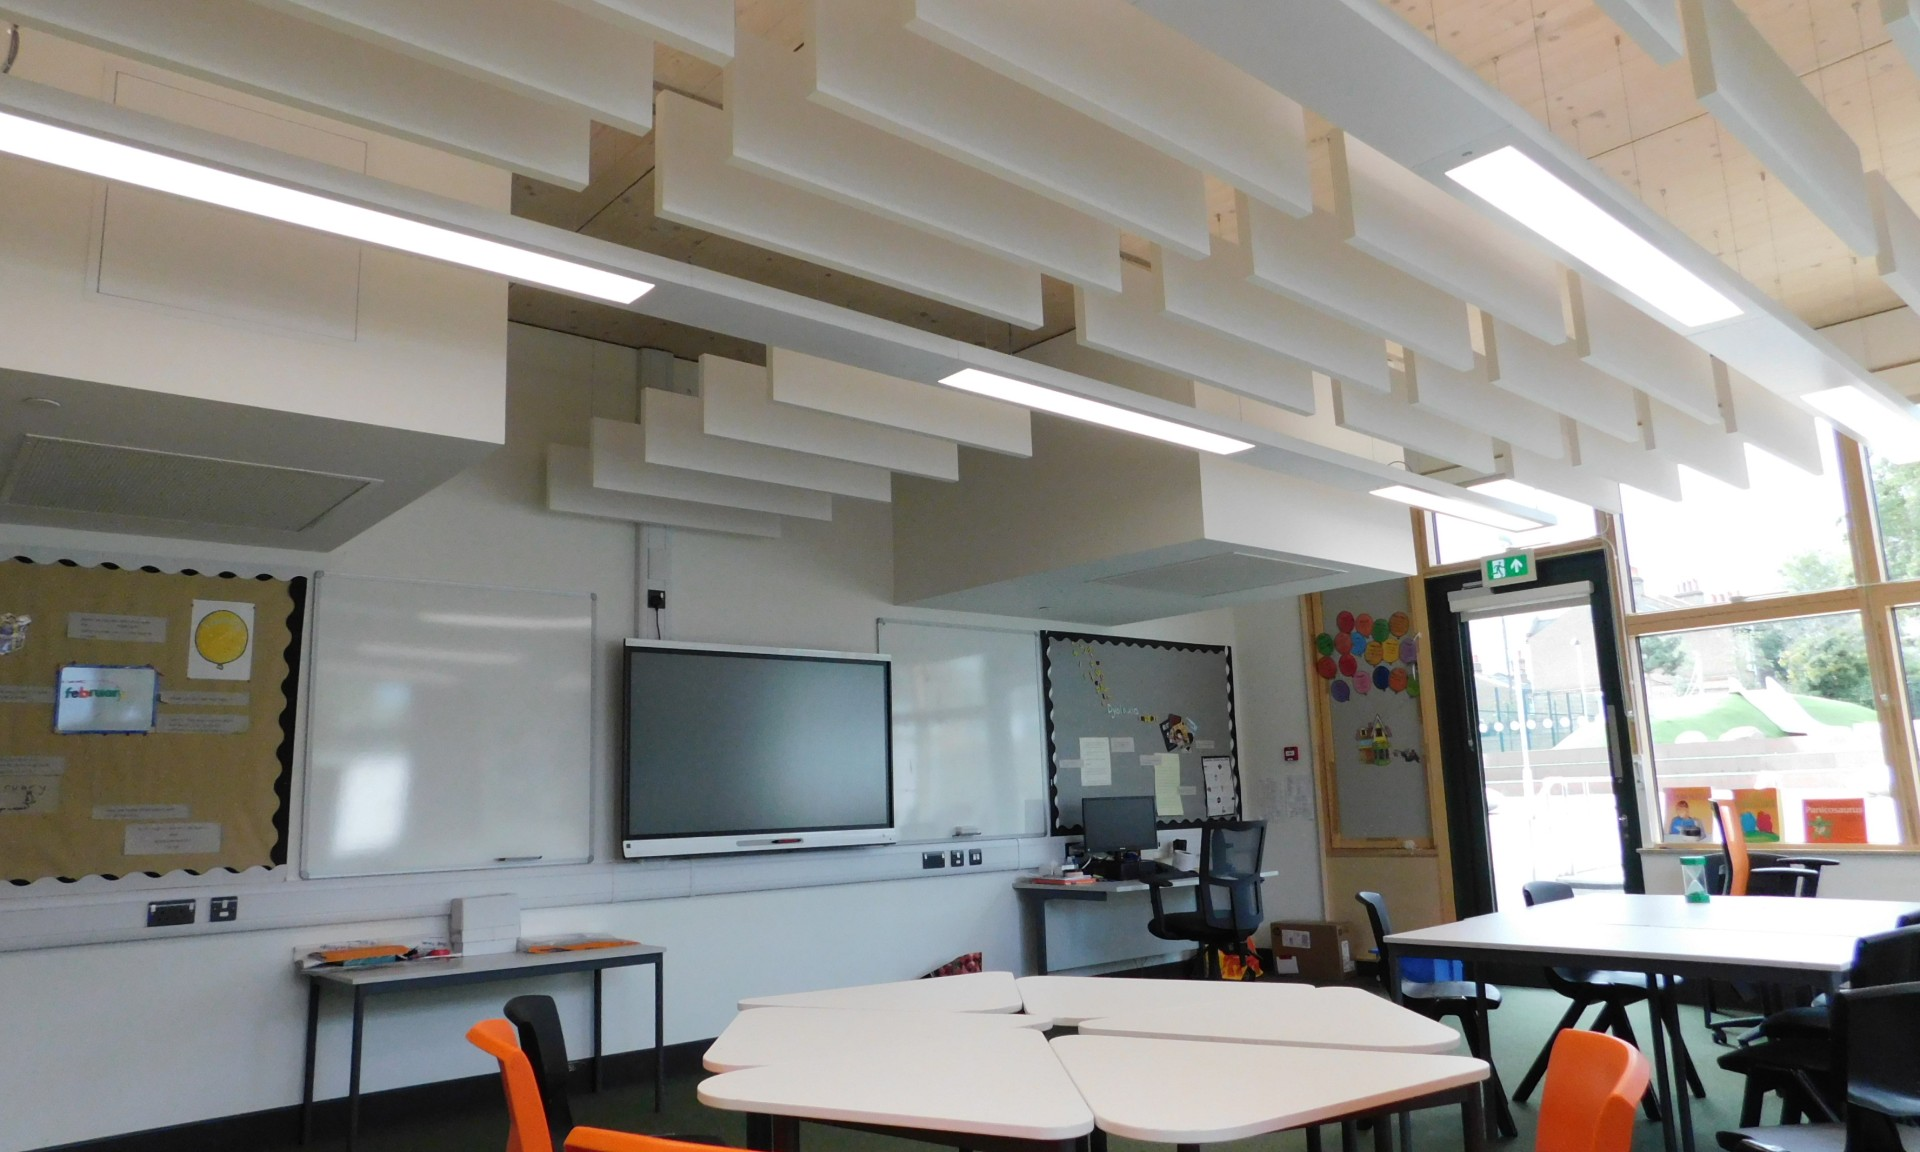 Breathing Buildings provides top-class low-energy ventilation solution to RIBA award-winning school